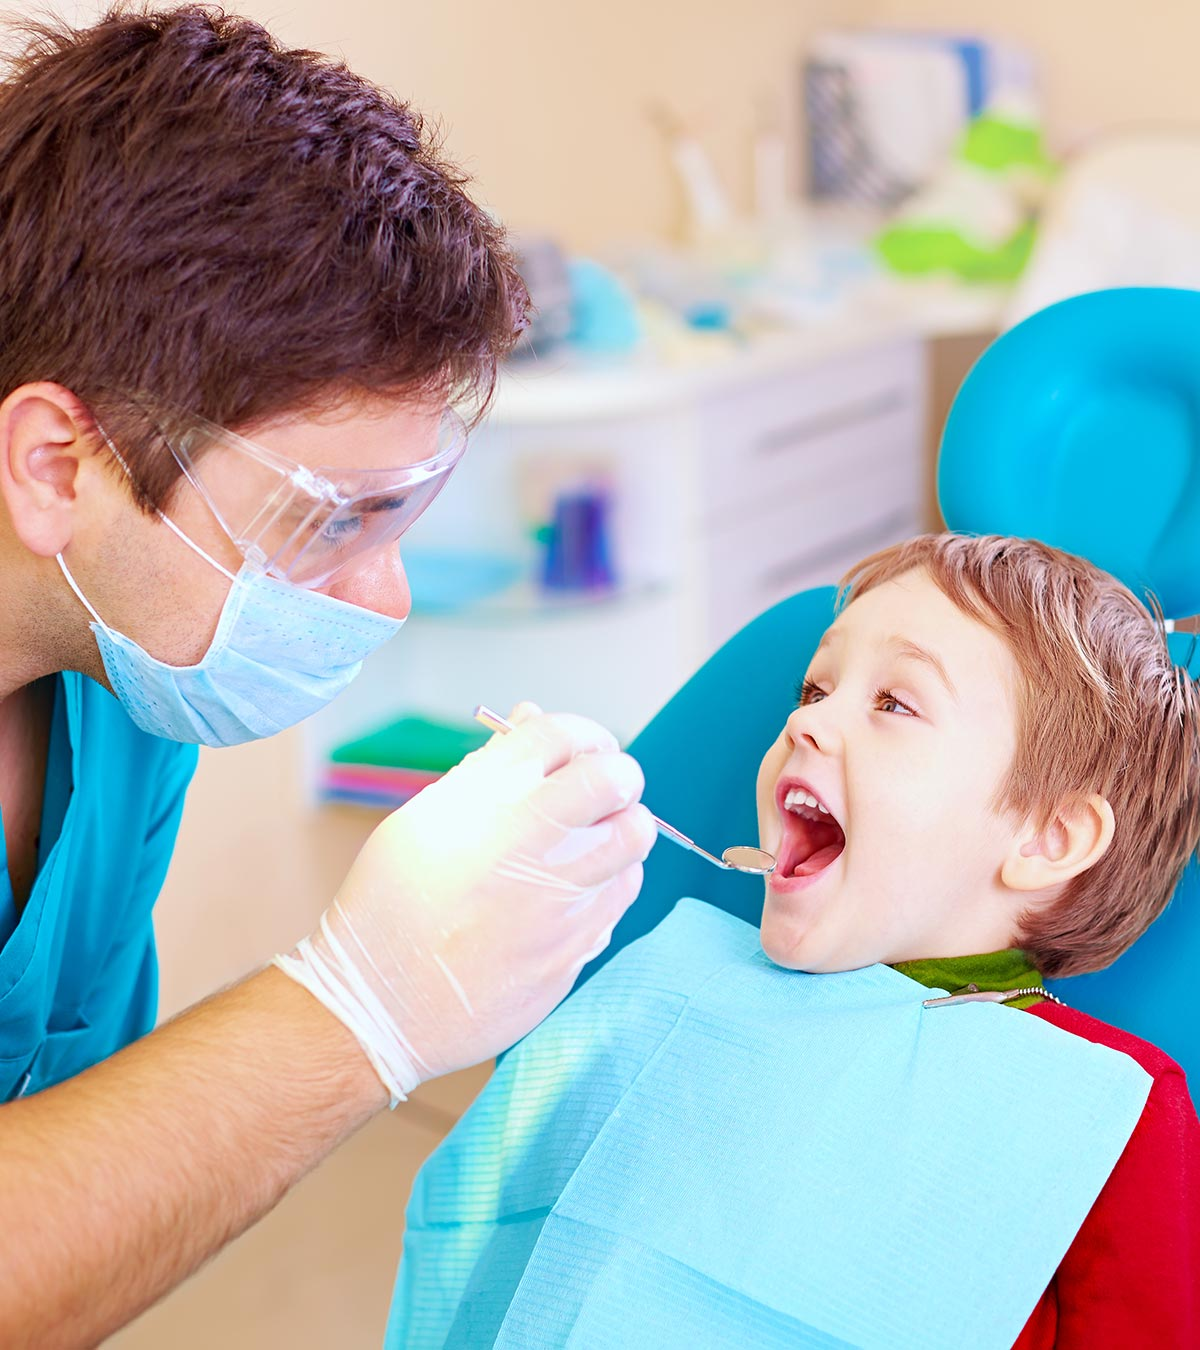 Tooth Decay In Children - Causes, Signs, Treatment And Prevention